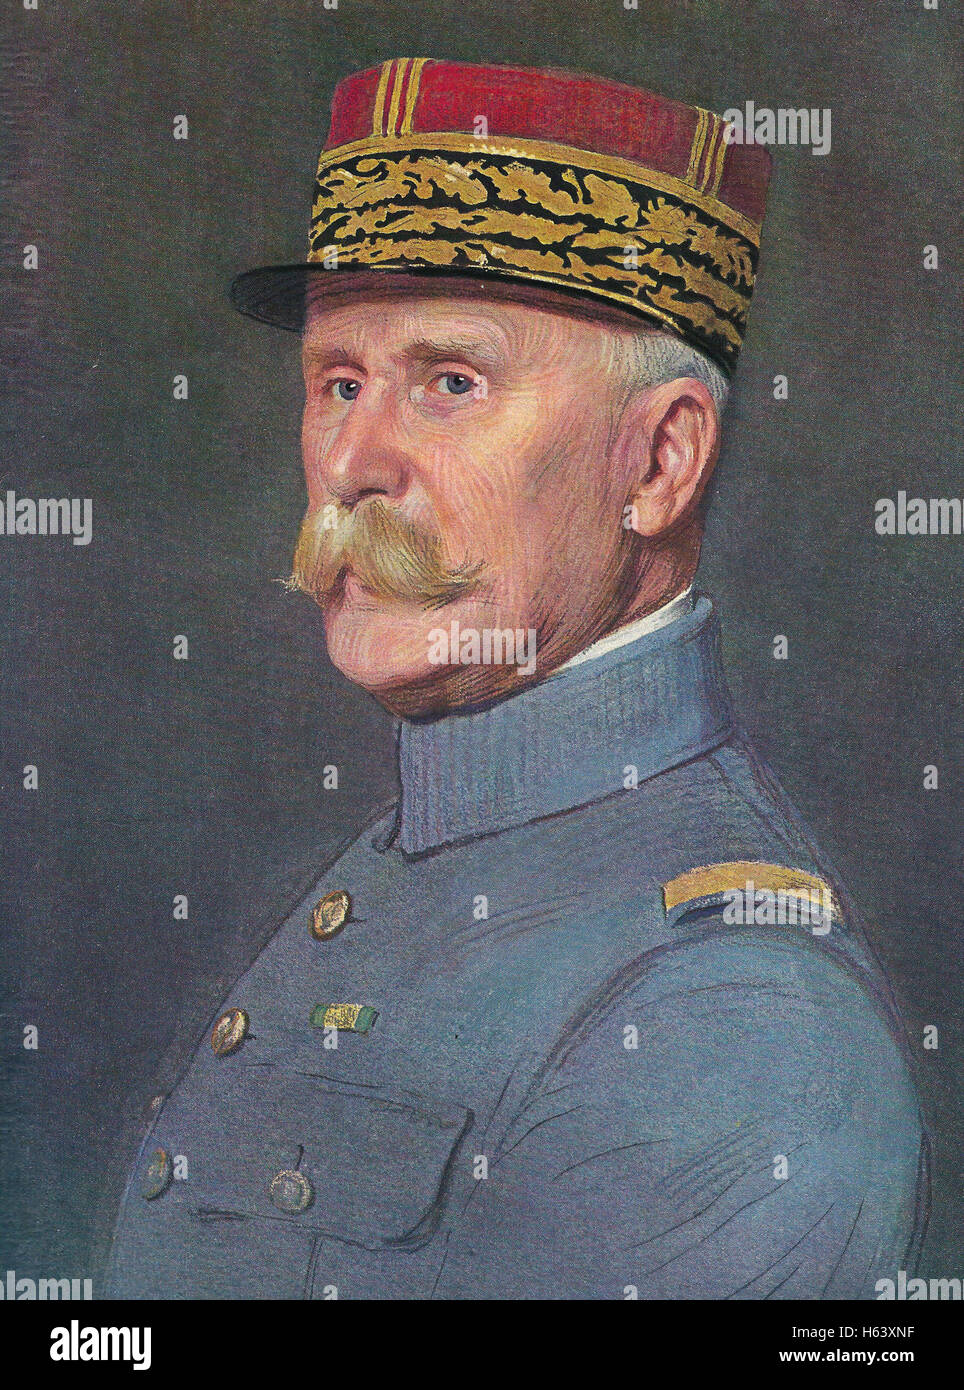 PHILIPPE PETAIN (1856-1951) French General in 1926 painted by Marcel Baschet - Stock Image